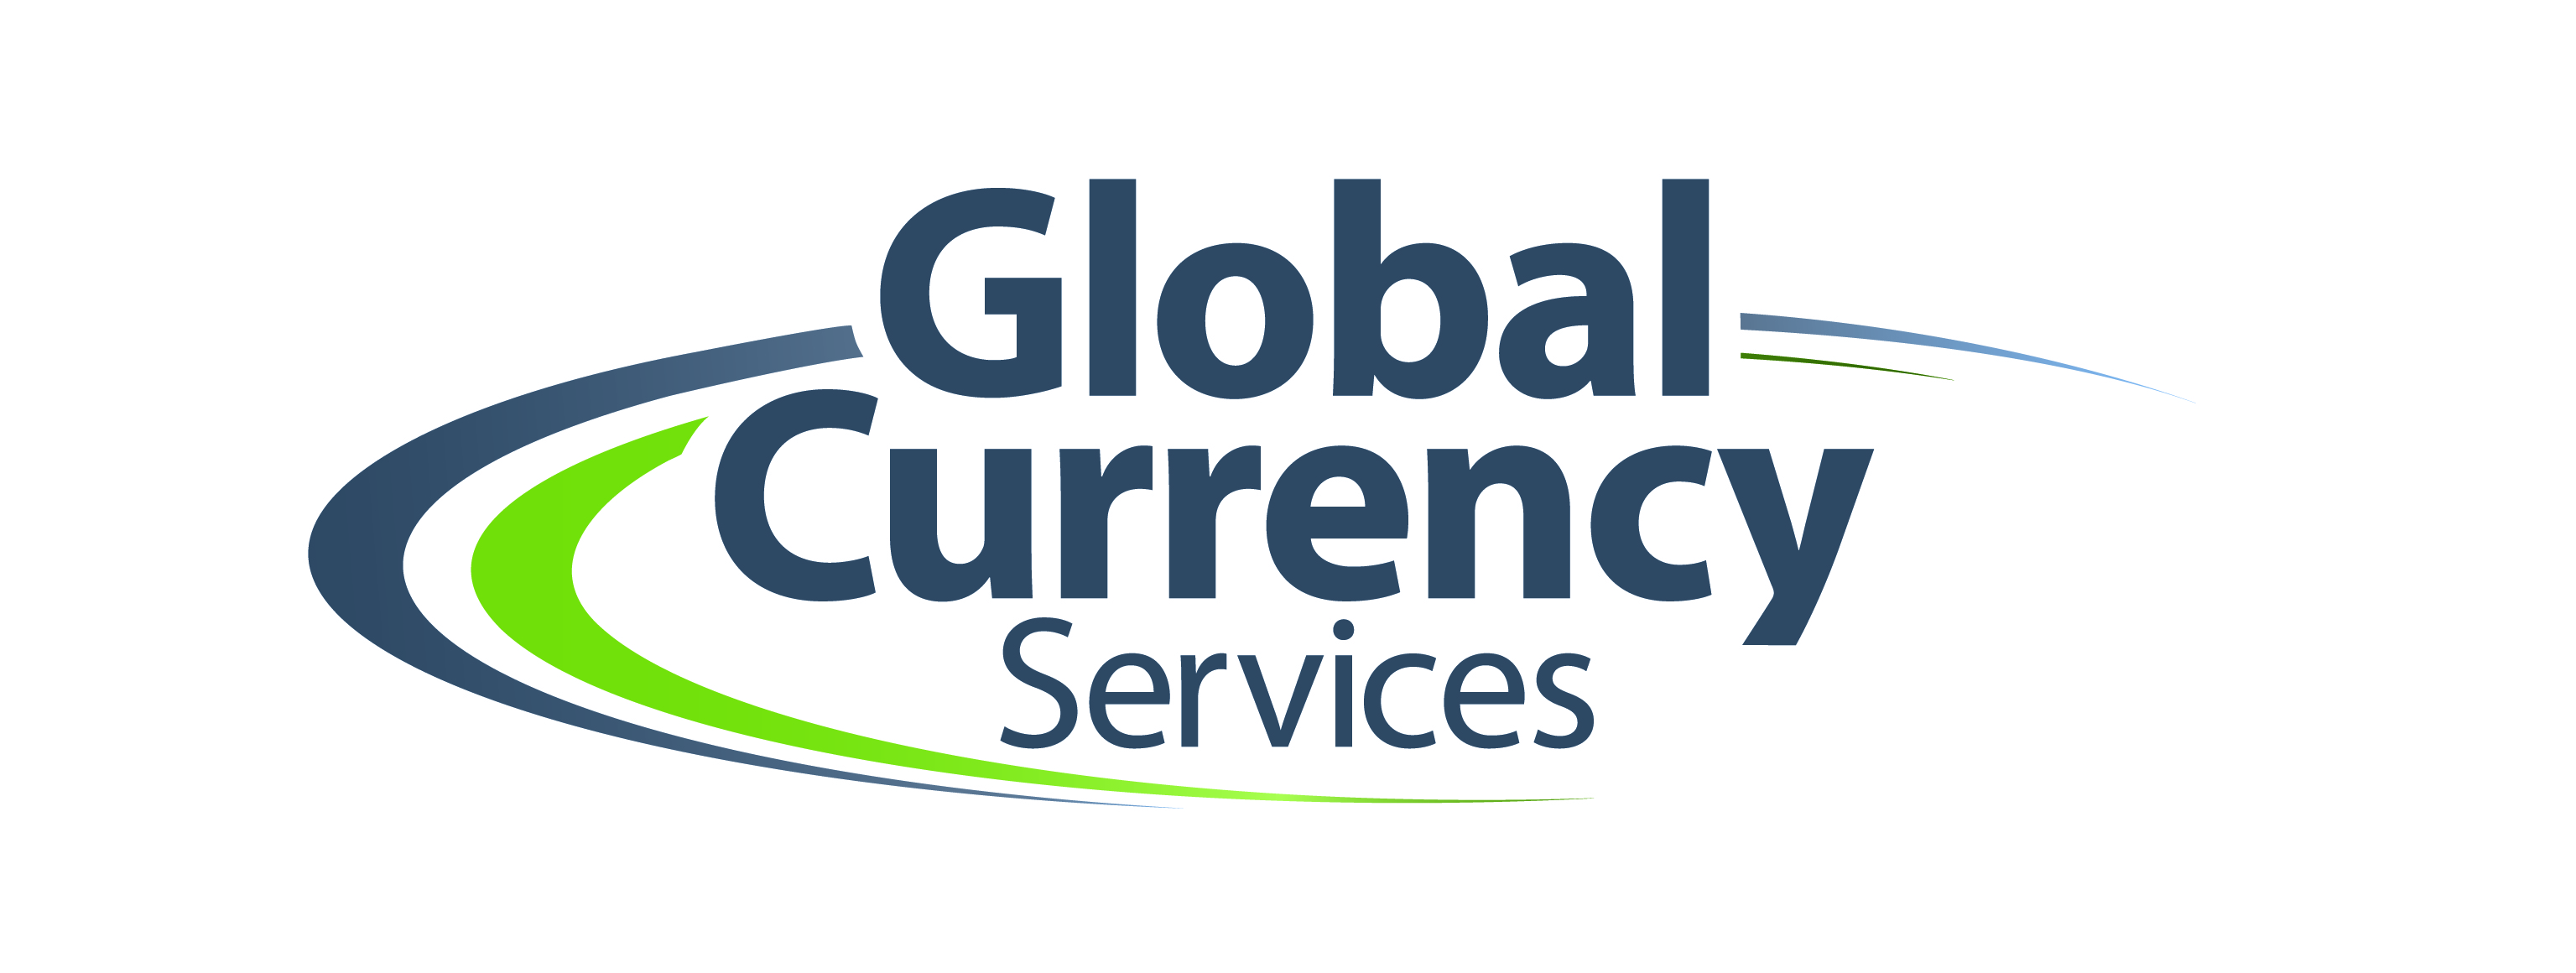 Global Currency Converters Logo